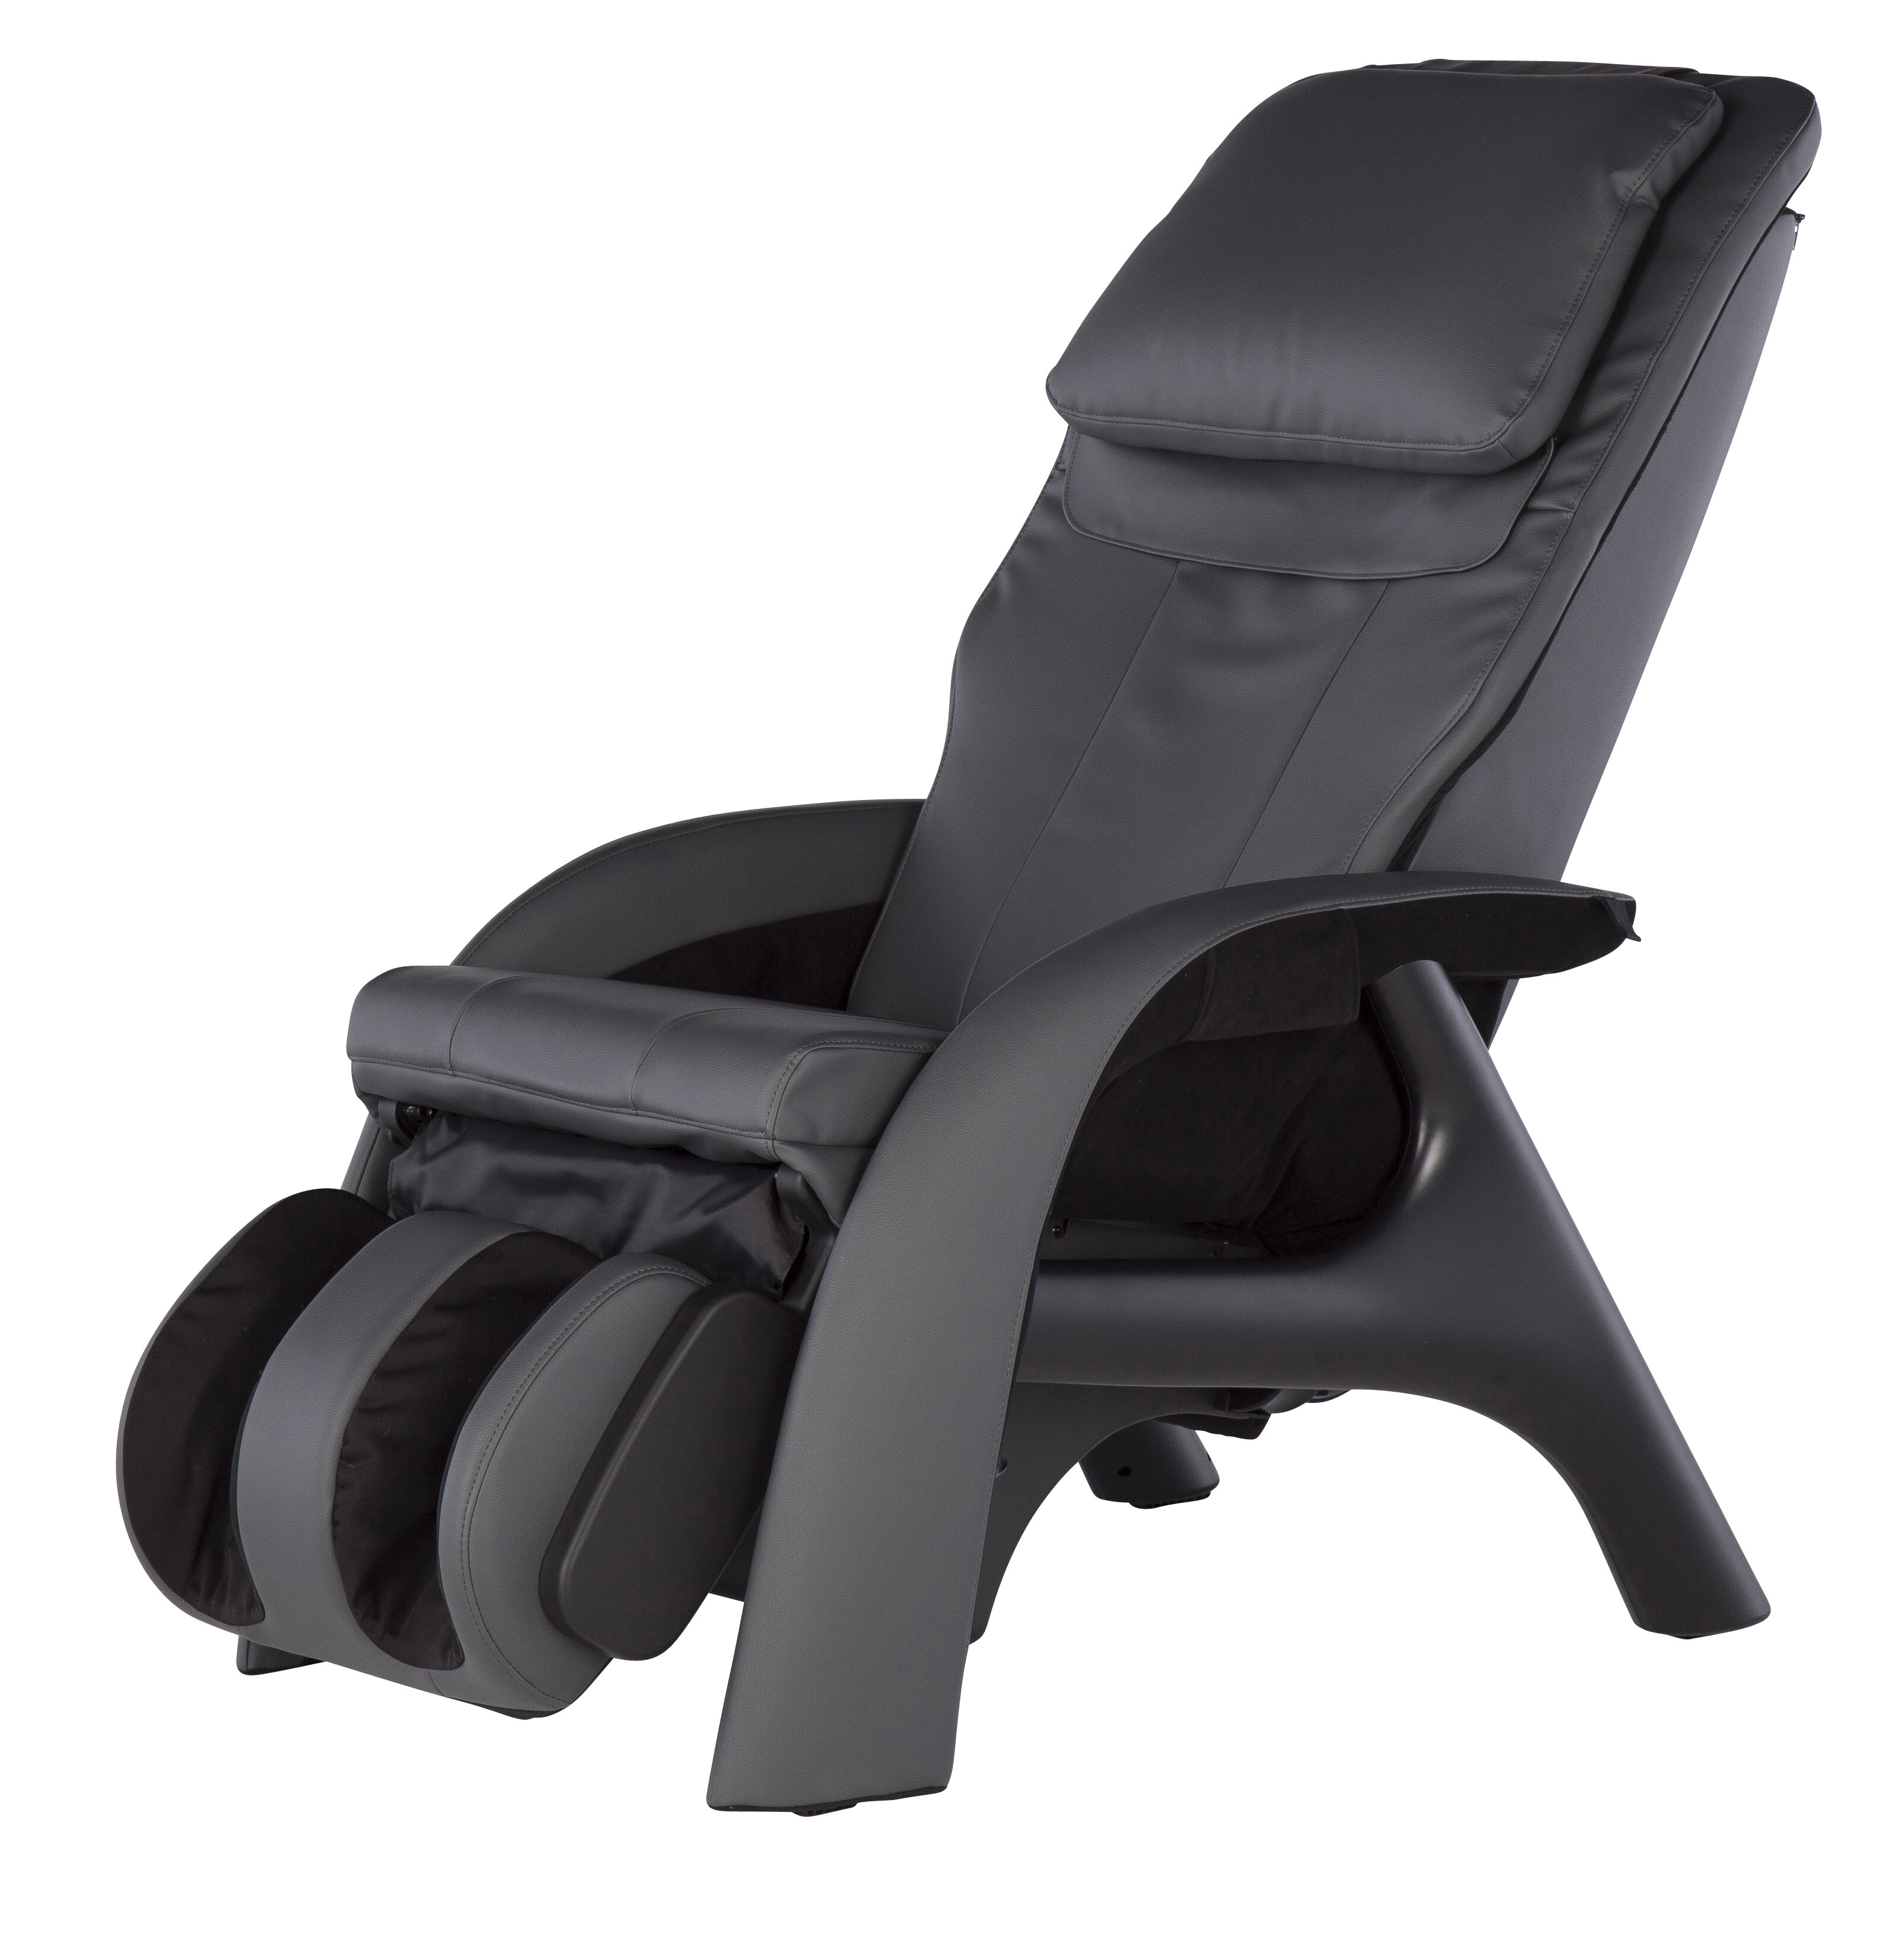 coalition massage for to cost freedom buying what you the chair gain health stand of an using by benefits electric